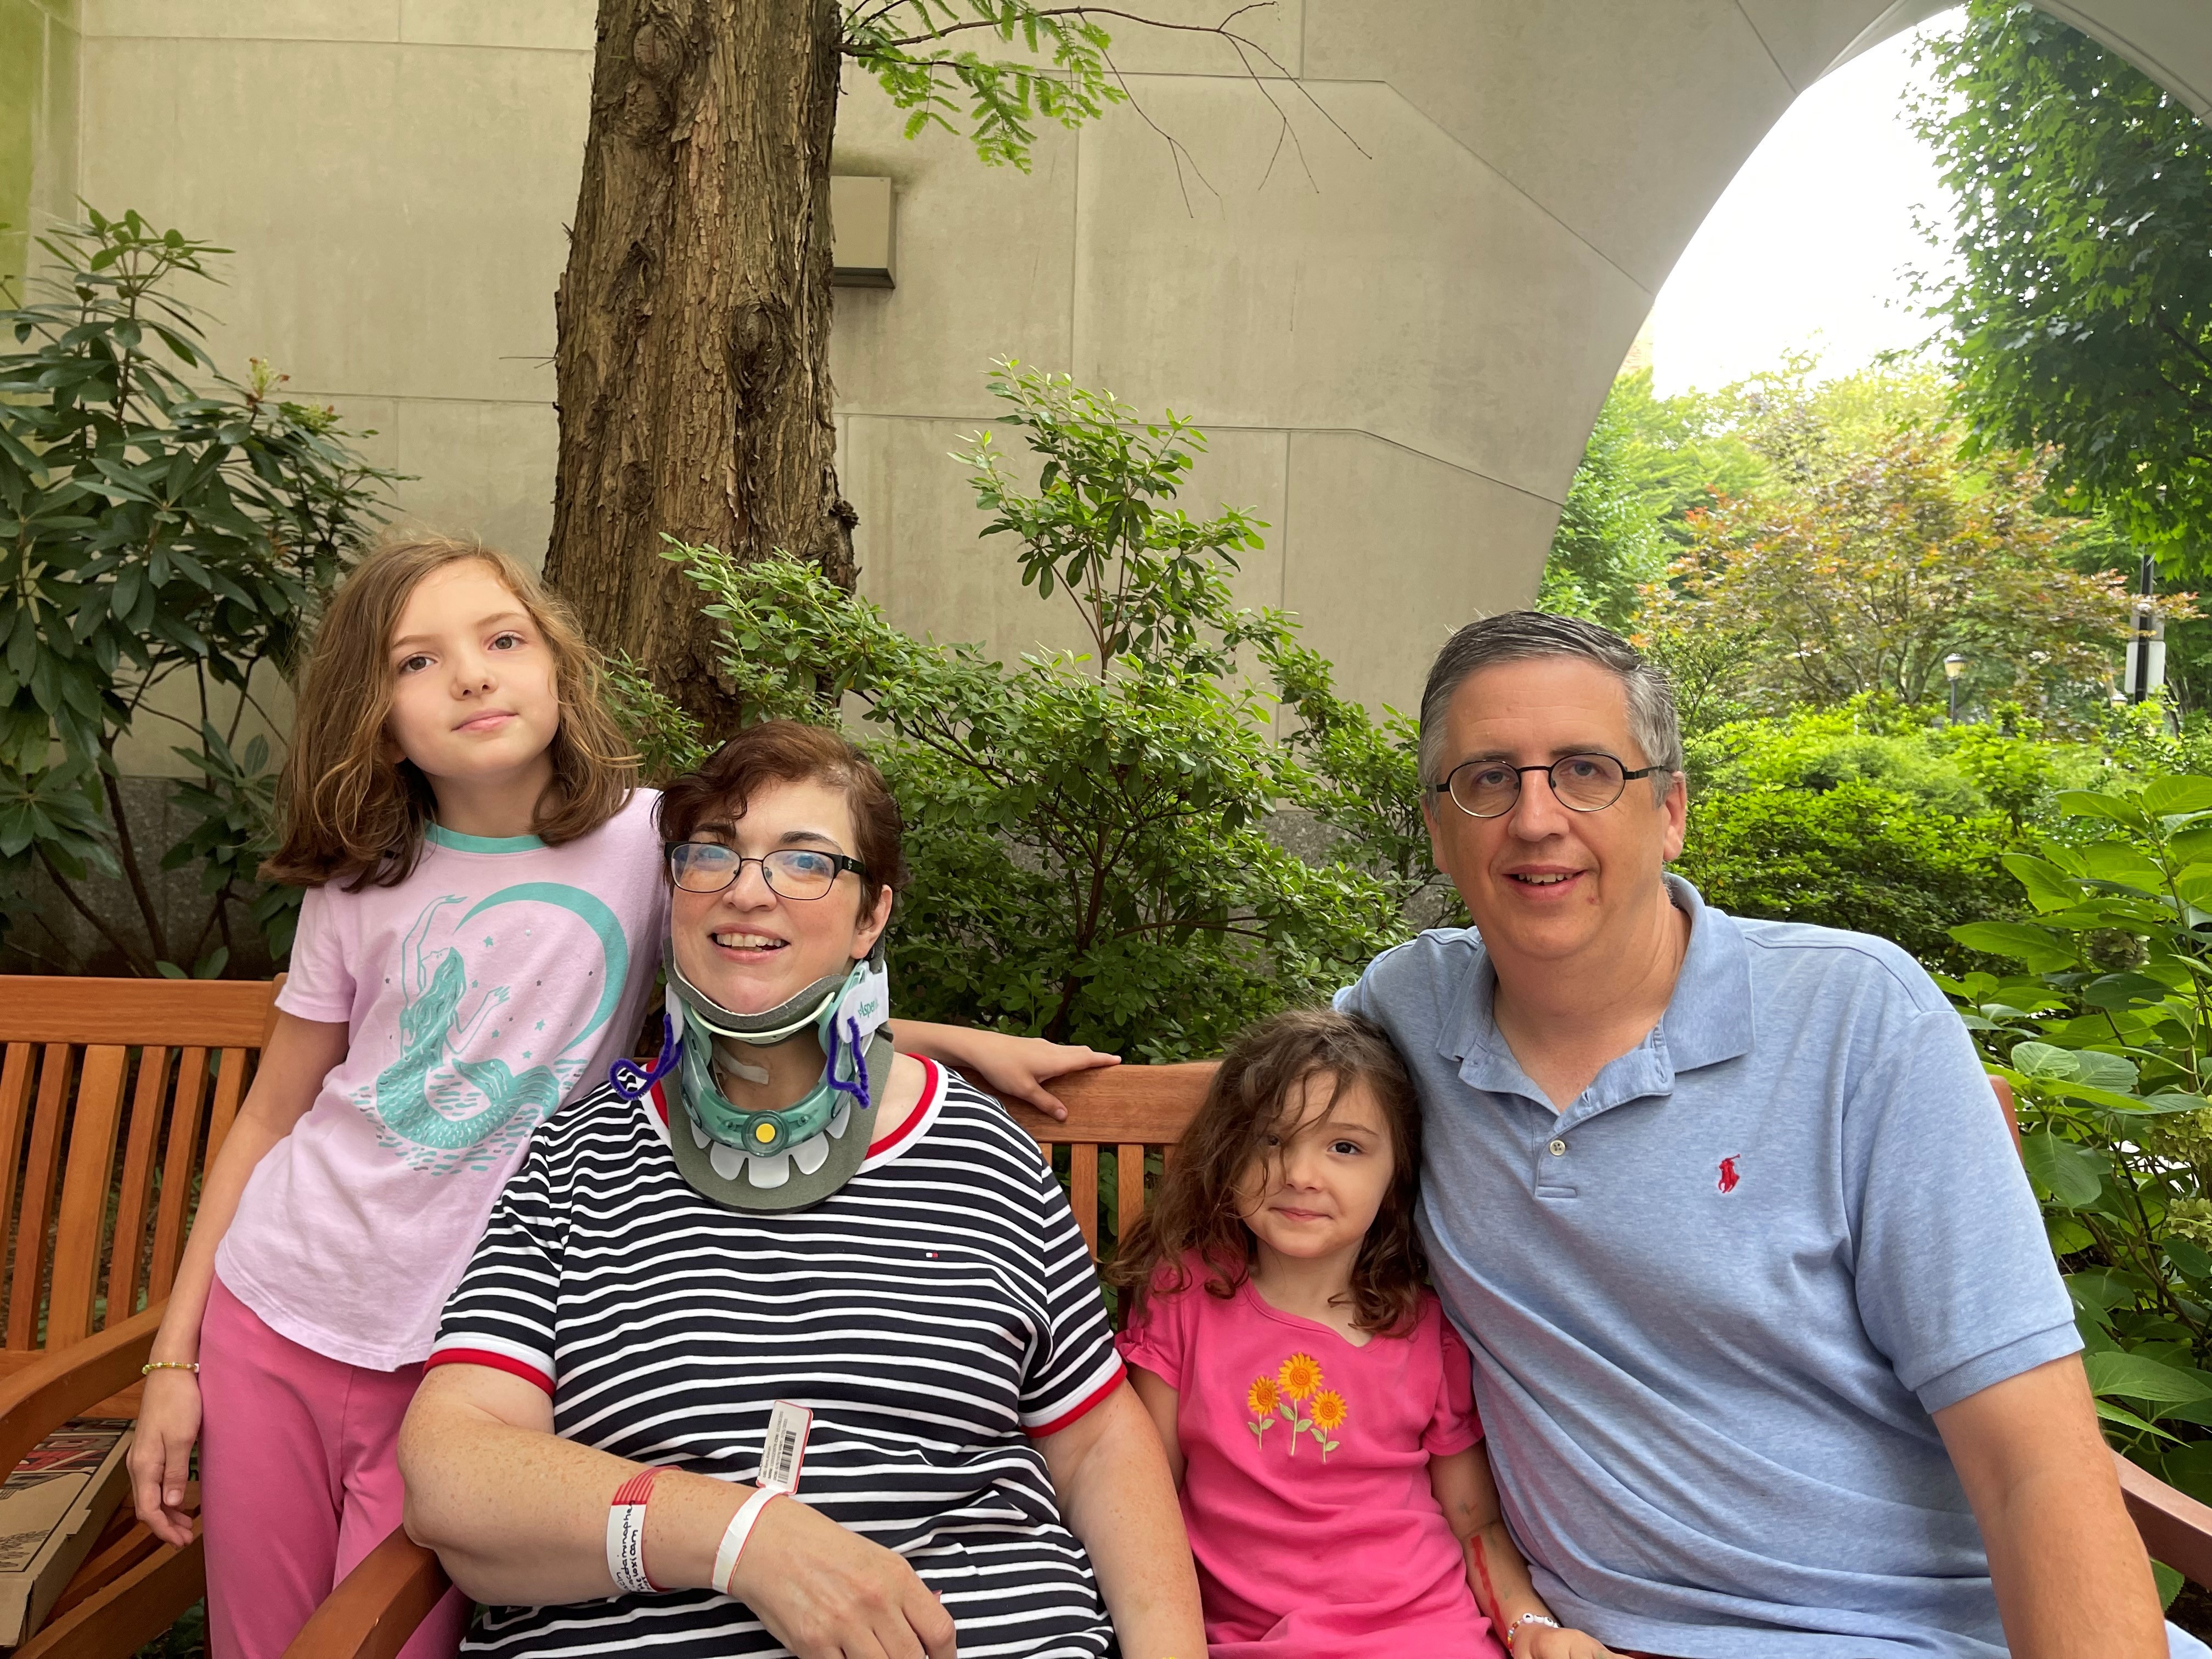 Kern family posing together while sitting on a bench outside